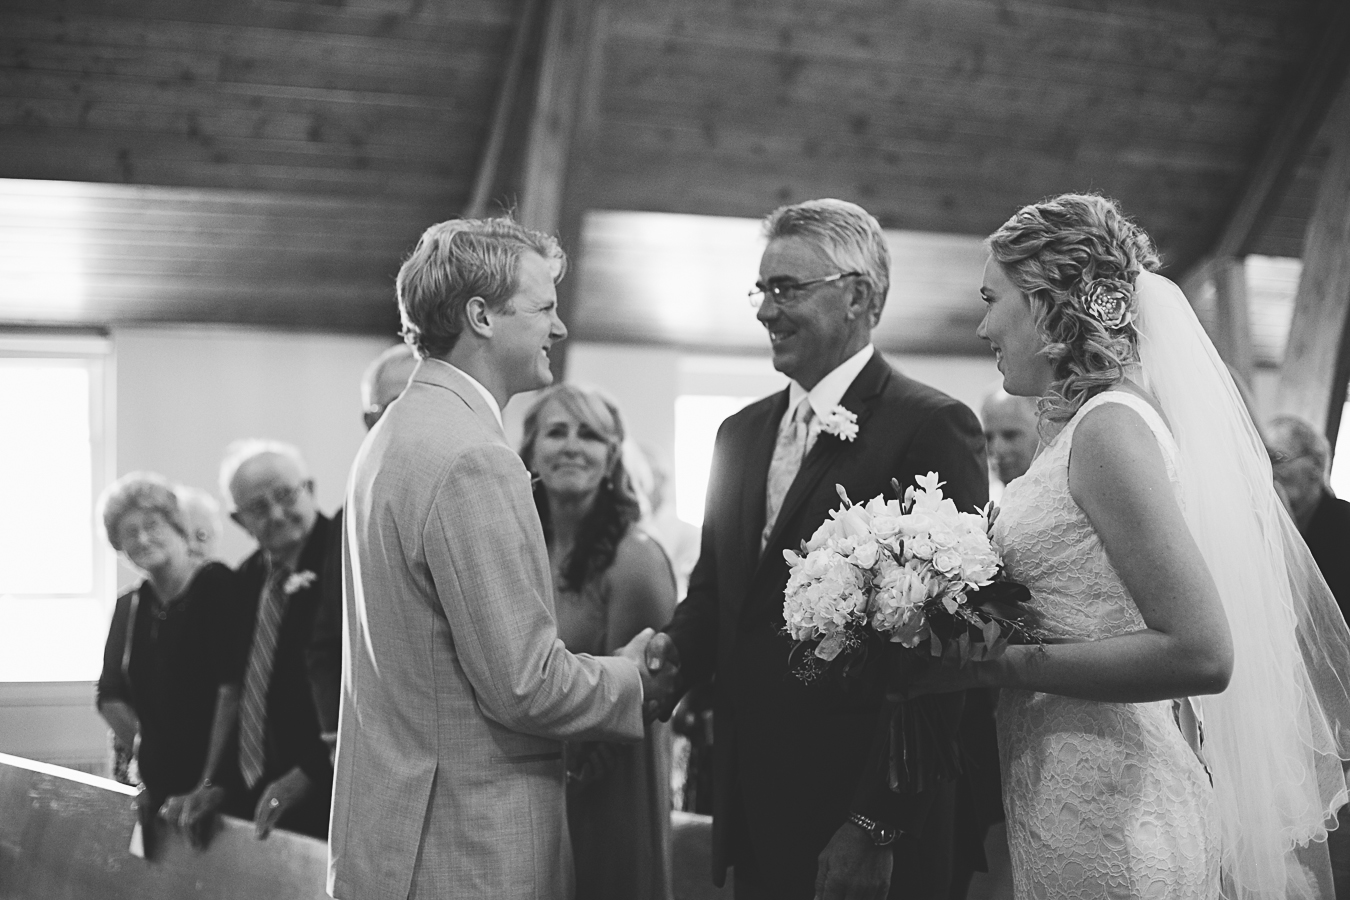 father passing daughter to groom at wedding